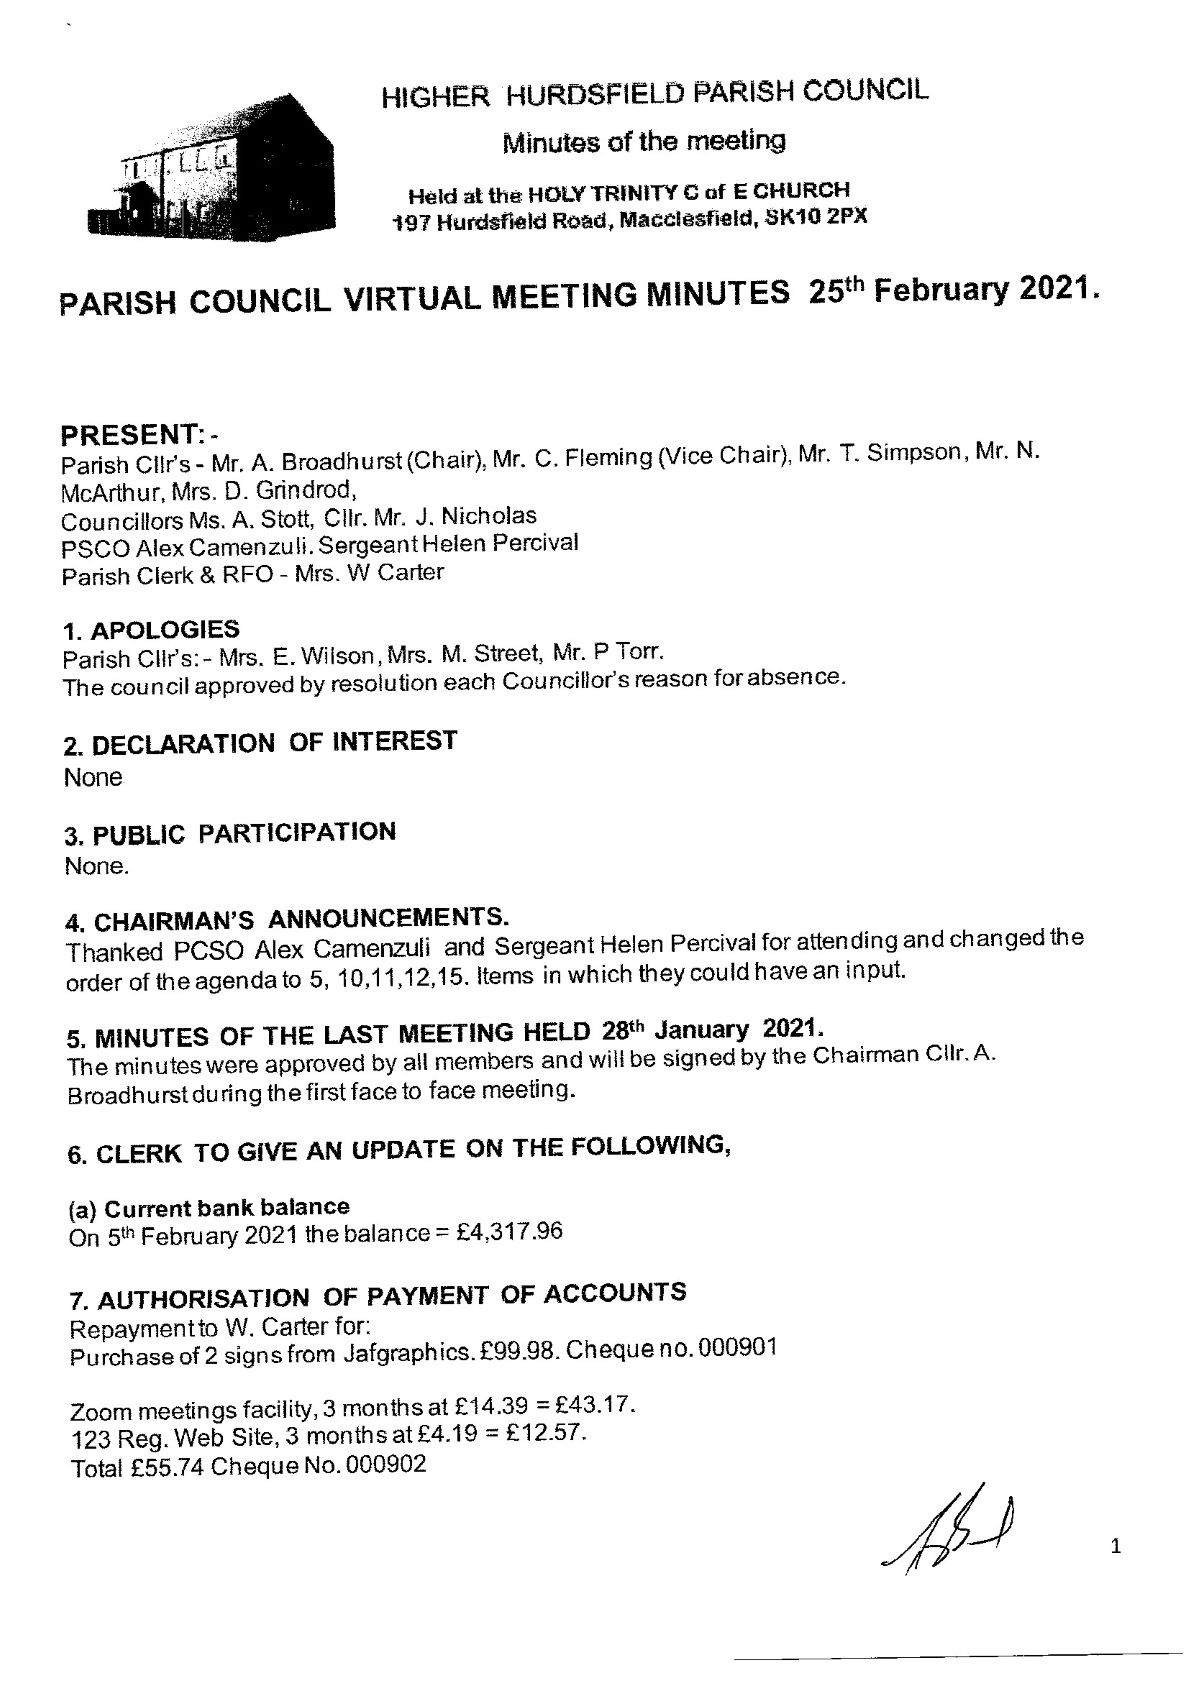 Signed Meeting Minutes 1 of 4